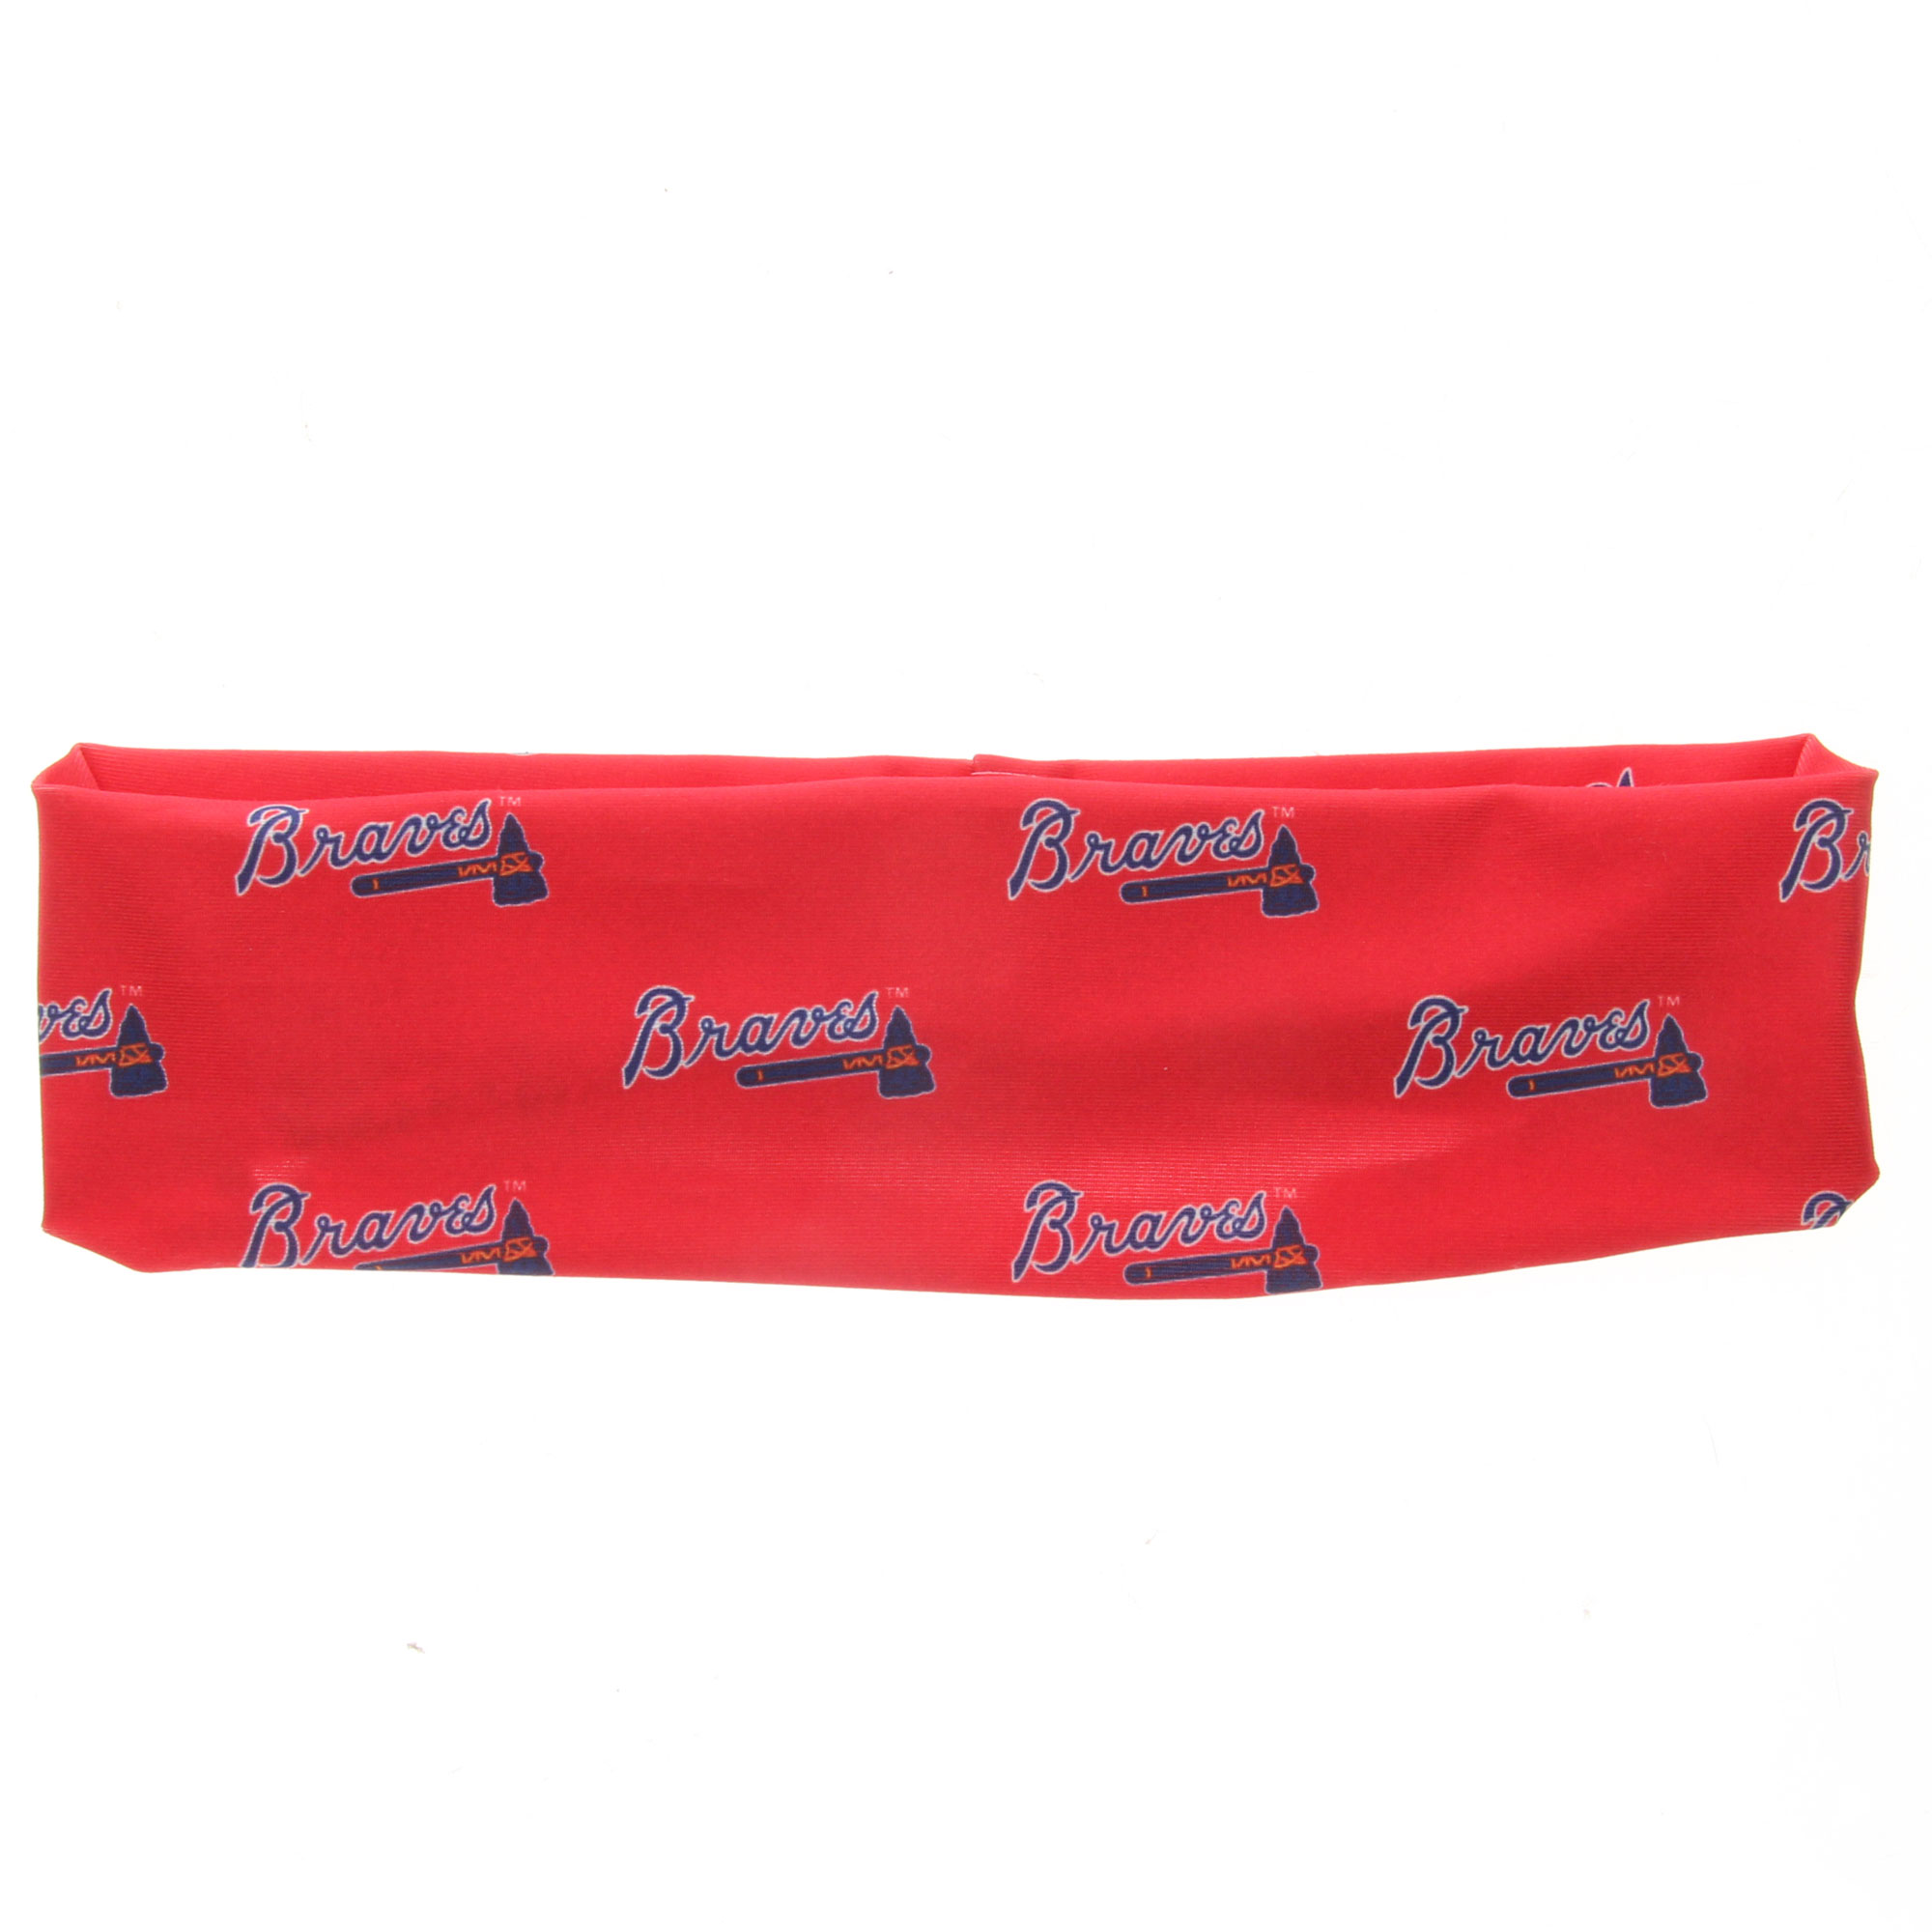 Atlanta Braves Coolcore Headband - Red - No Size